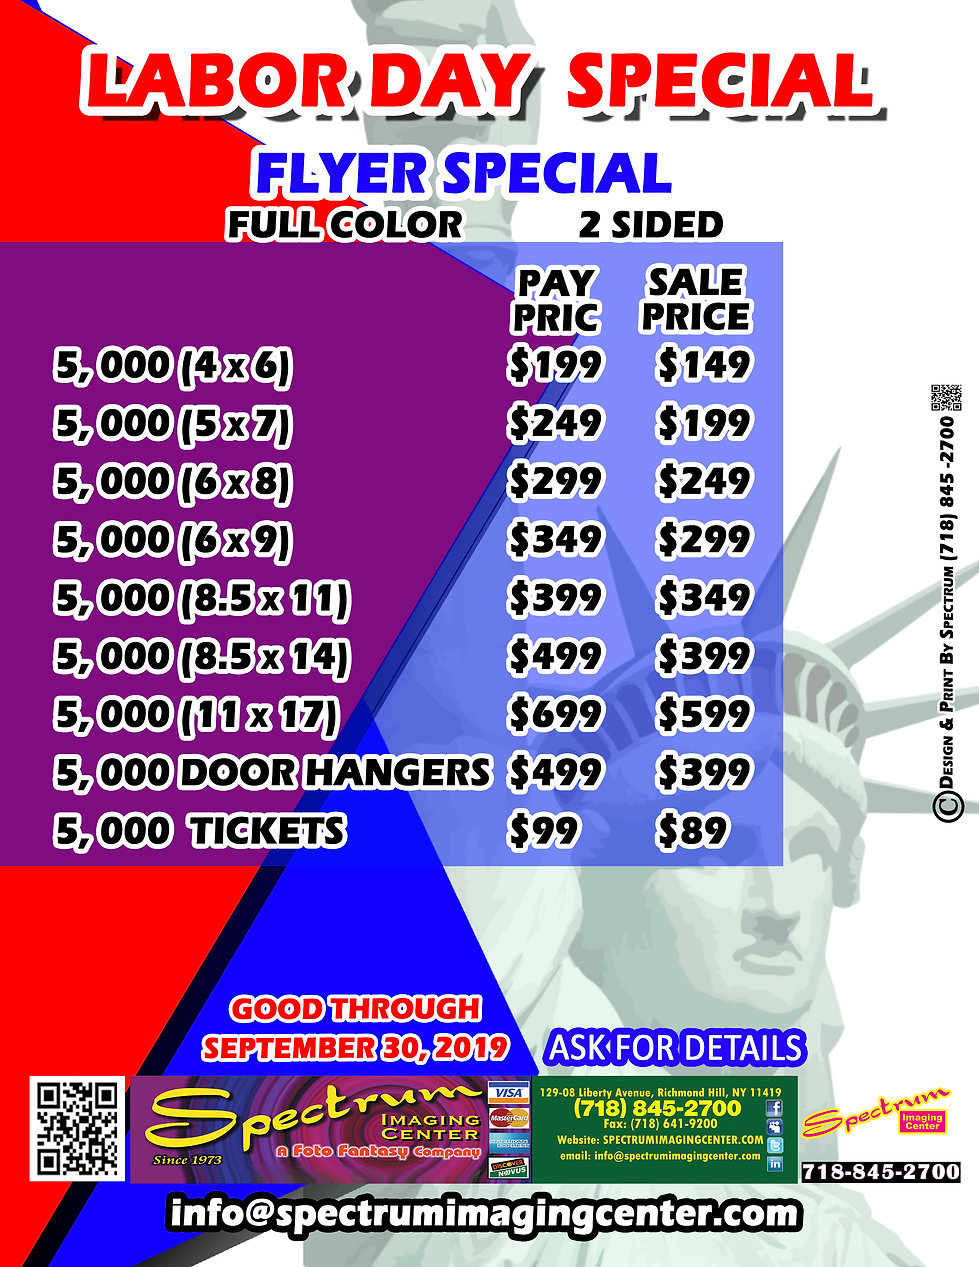 LABOUR DAY FLYER SPECIAL(08-30-19)V1.jpg